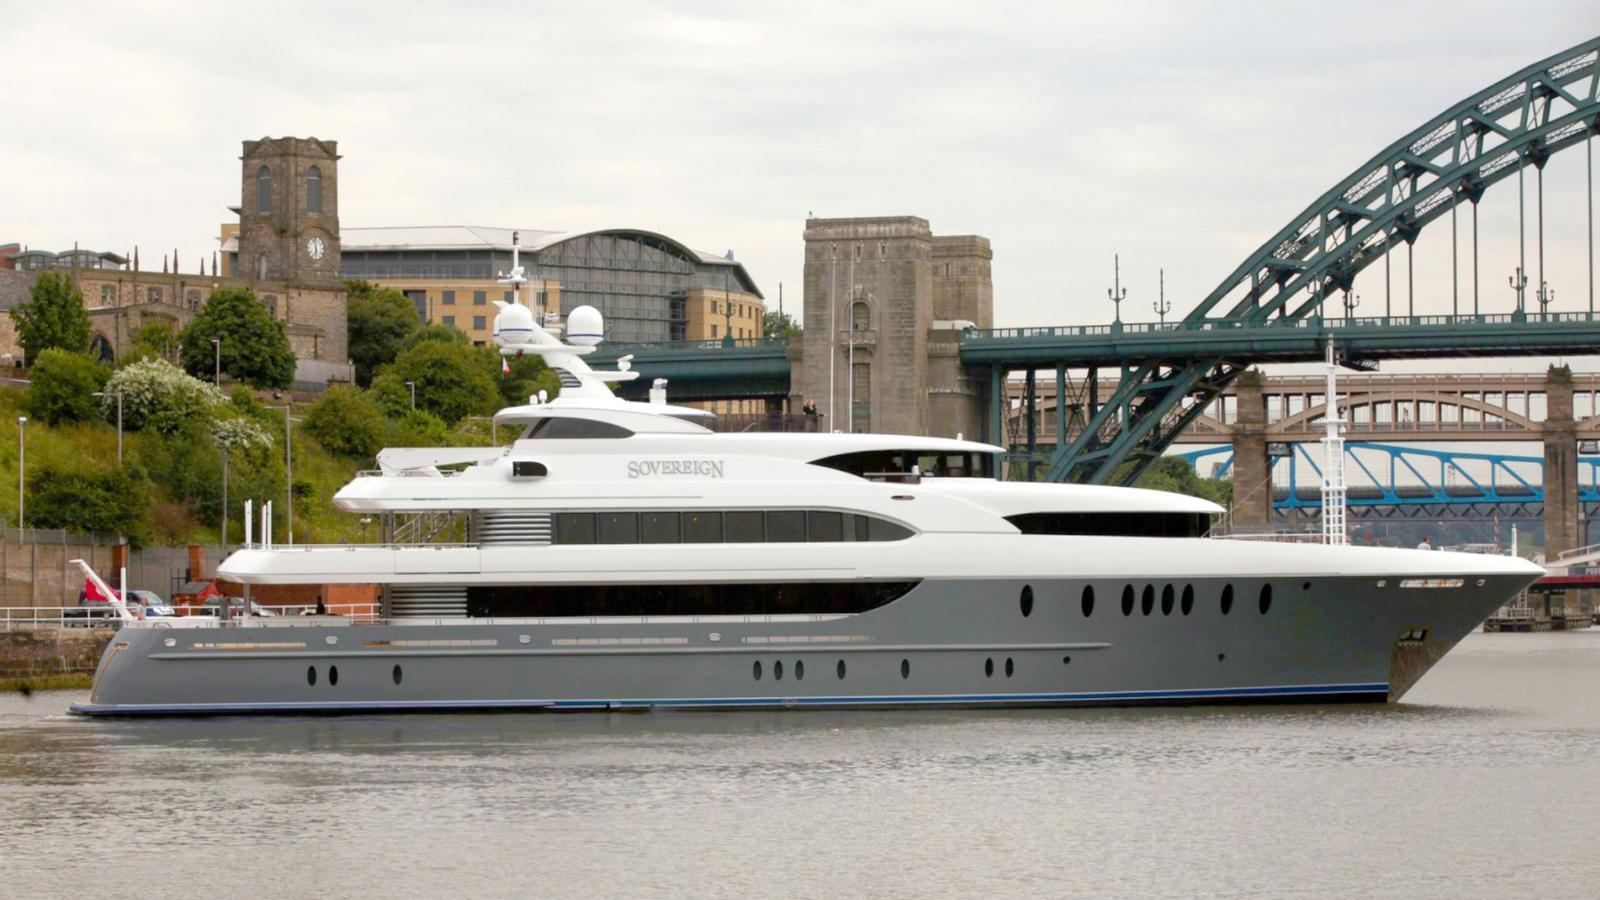 sovereign-motor-yacht-newcastle-marine-2011-55m-profile-anchored